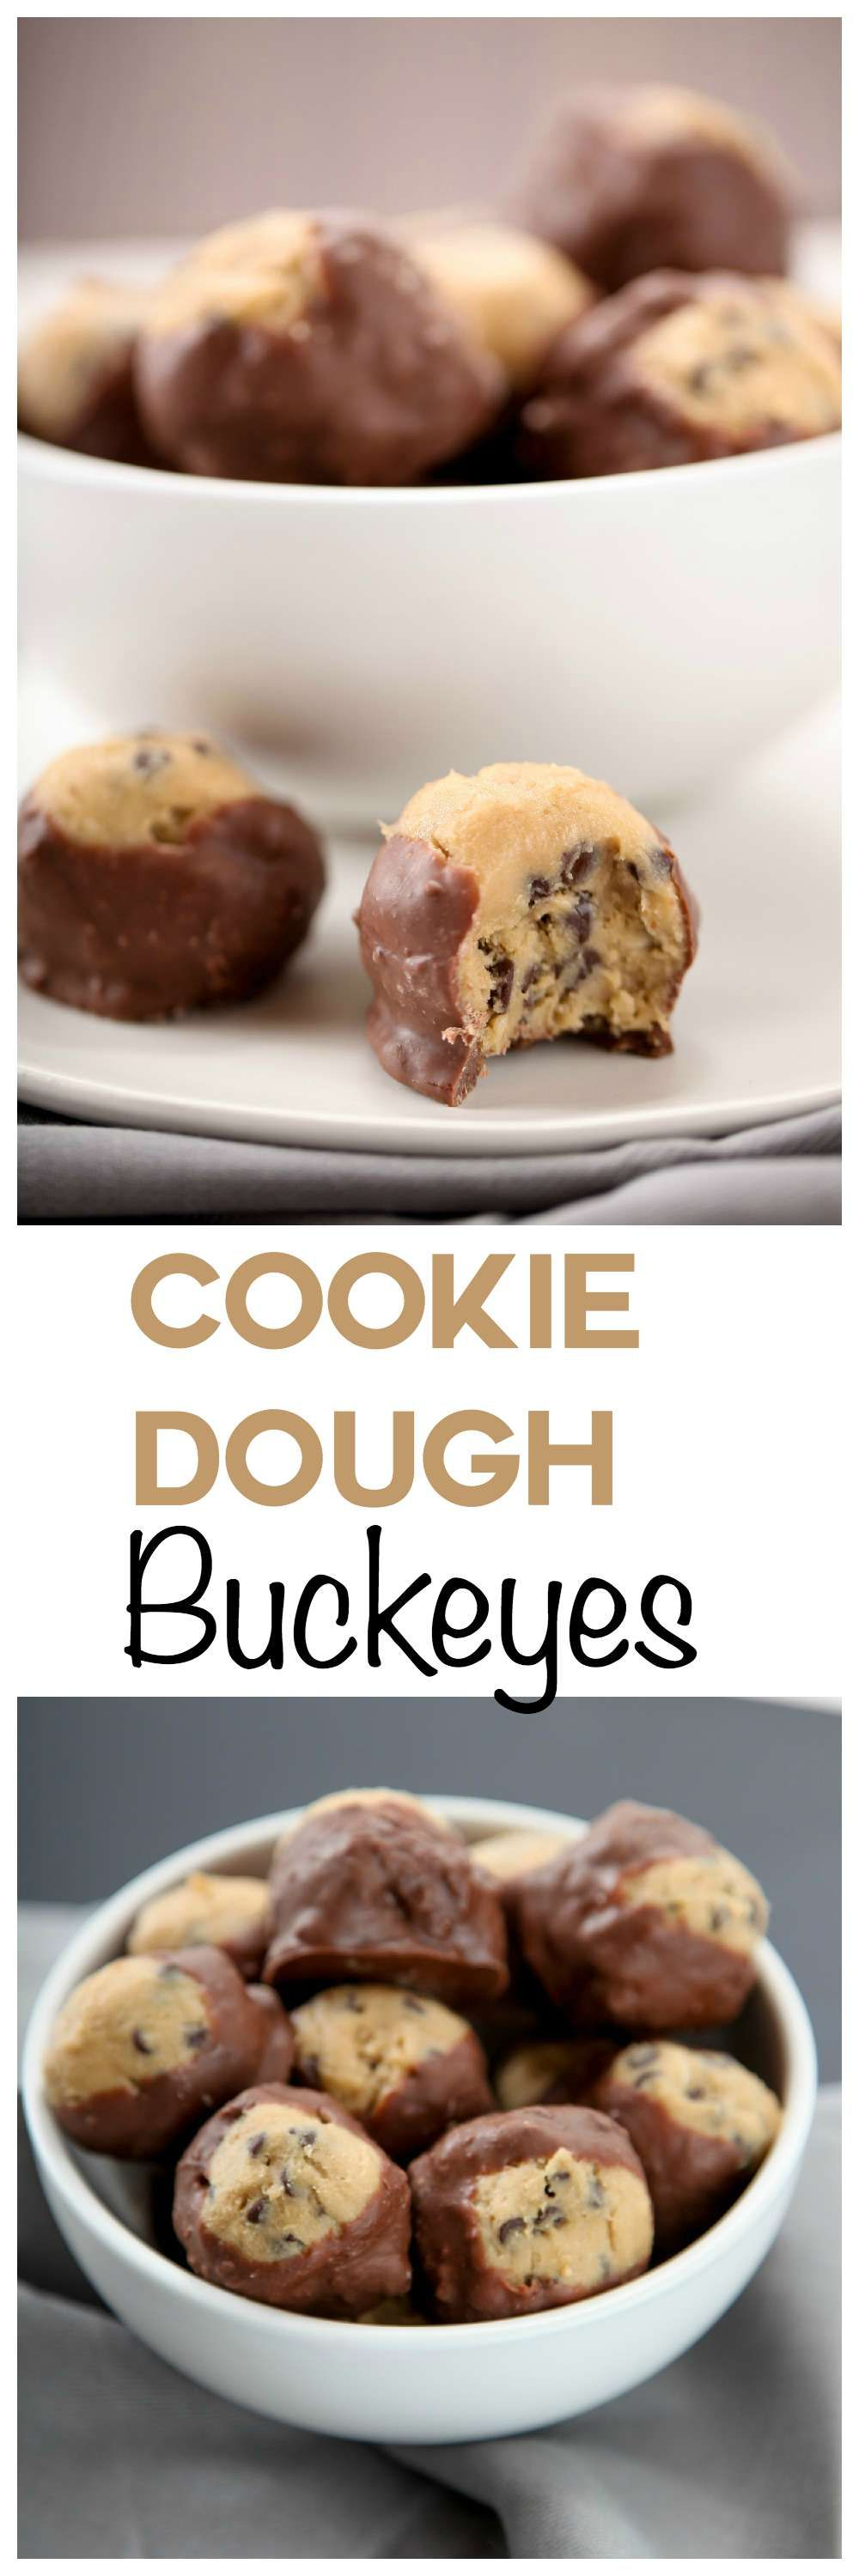 Creamy chocolate chip cookie dough coated in rich milk chocolate. So addicting!